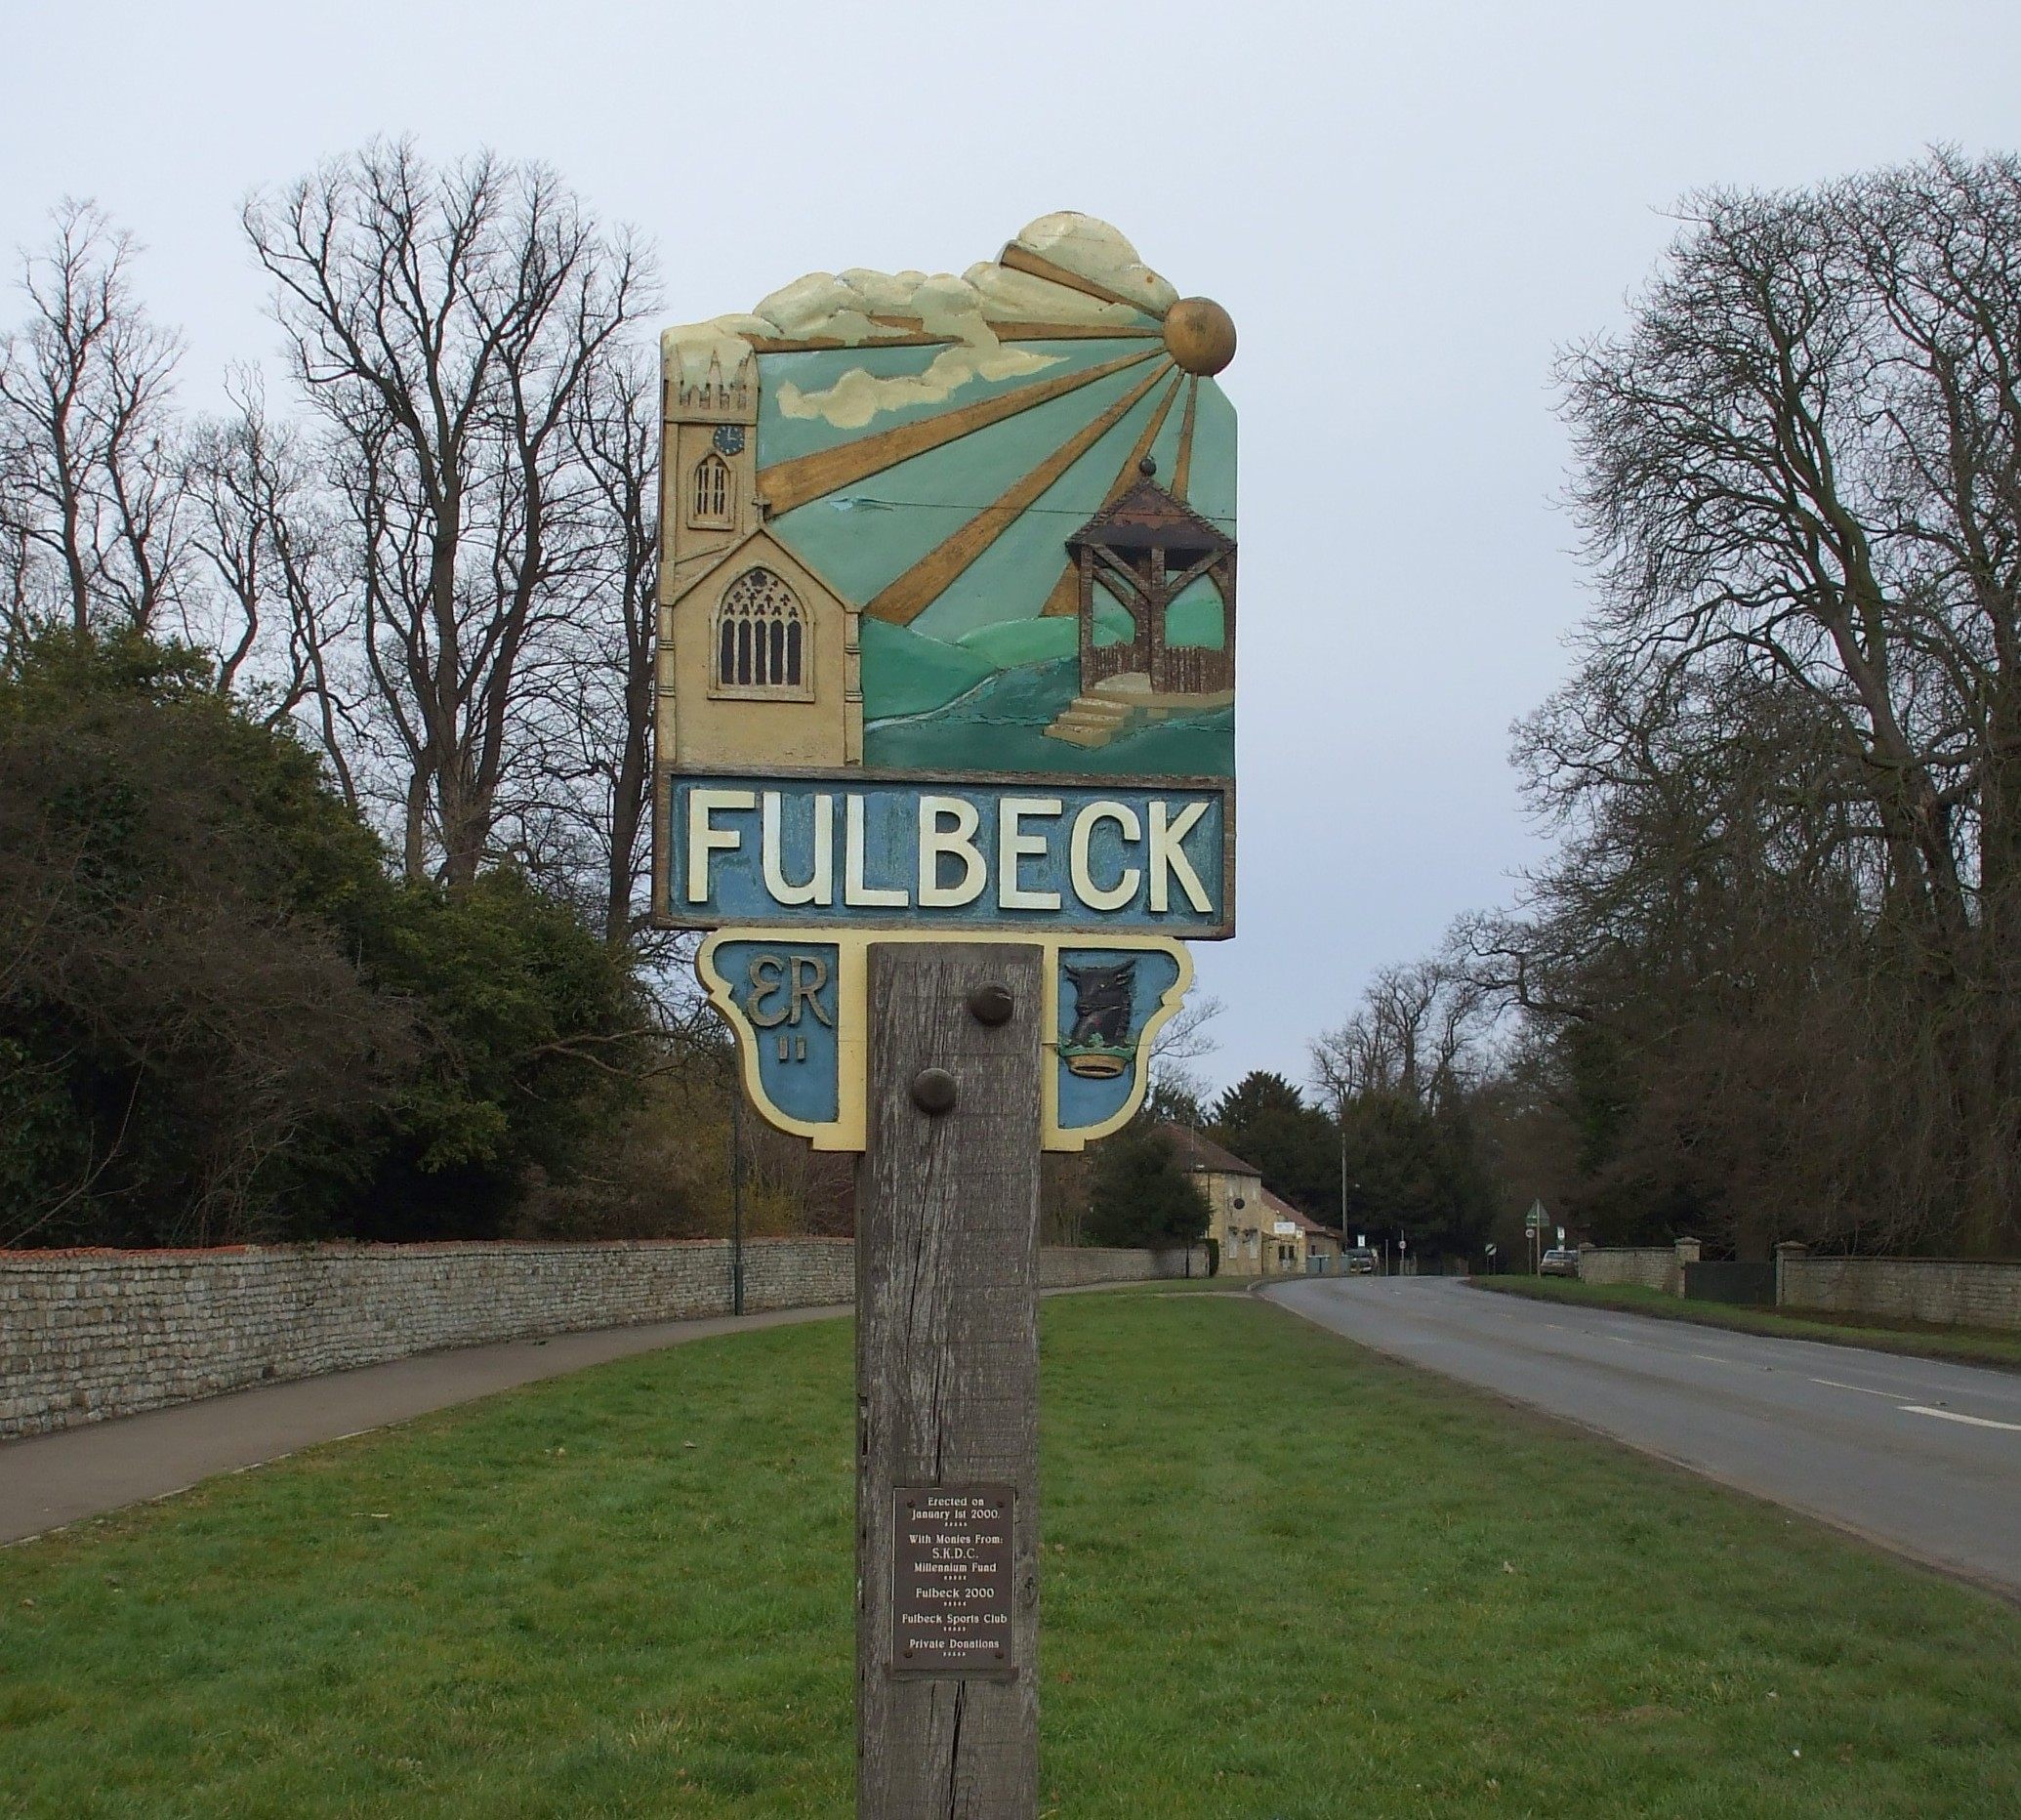 Fullbeck village sign